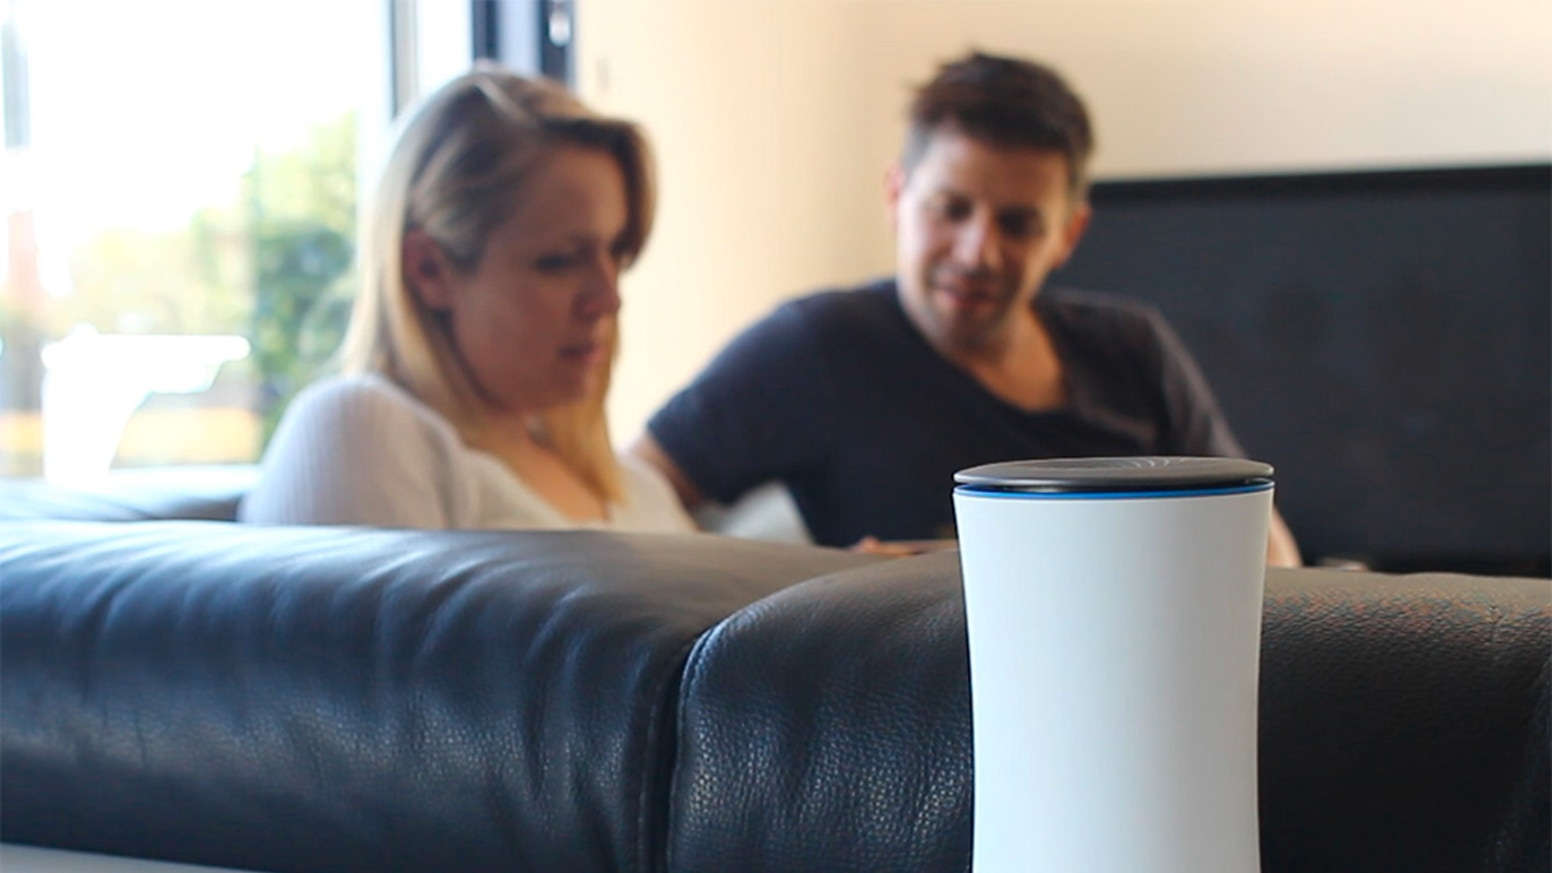 helixee is the first connected object that makes it easy and safe to back up and share your digital life at home or at the office